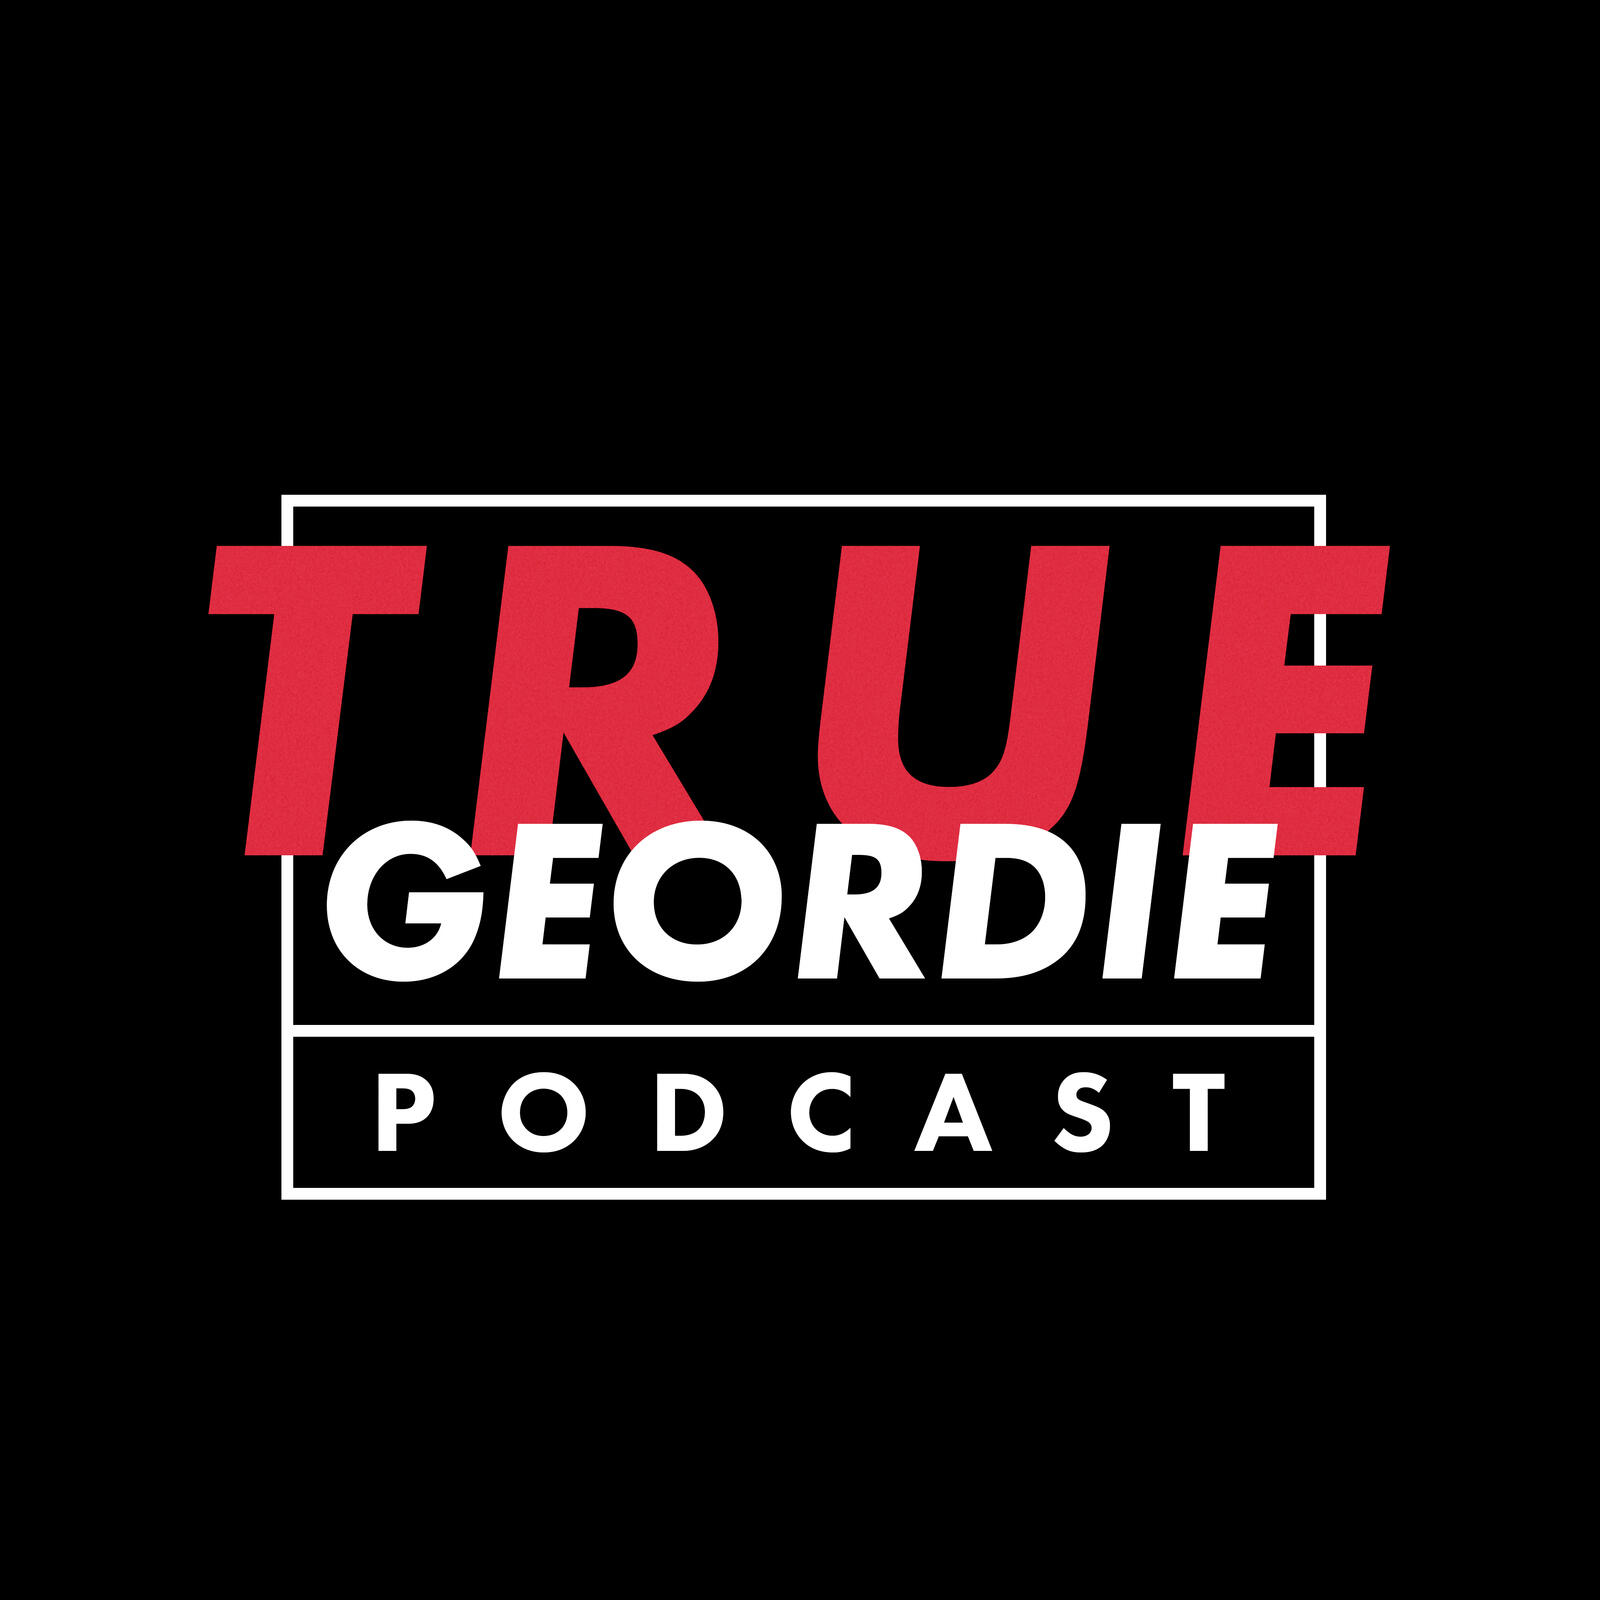 109: #109 RICKY GERVAIS | True Geordie Podcast